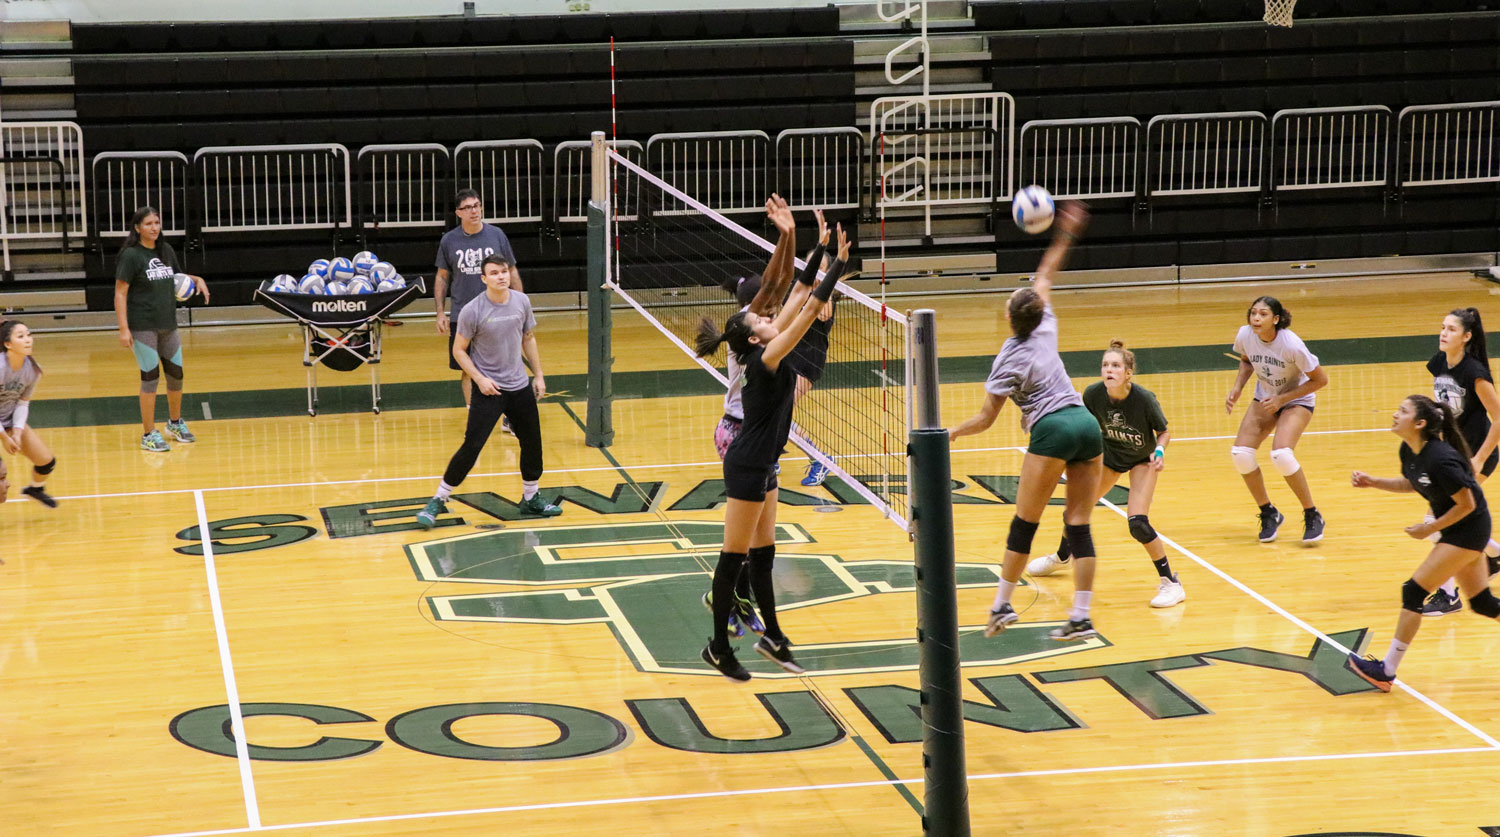 The Saints volleyball team scrimmage against each other in the greenhouse on Sept. 6. The Saints volleyball team is ranked No. 1 in the nation, and hasn't dropped a set in any of their games.